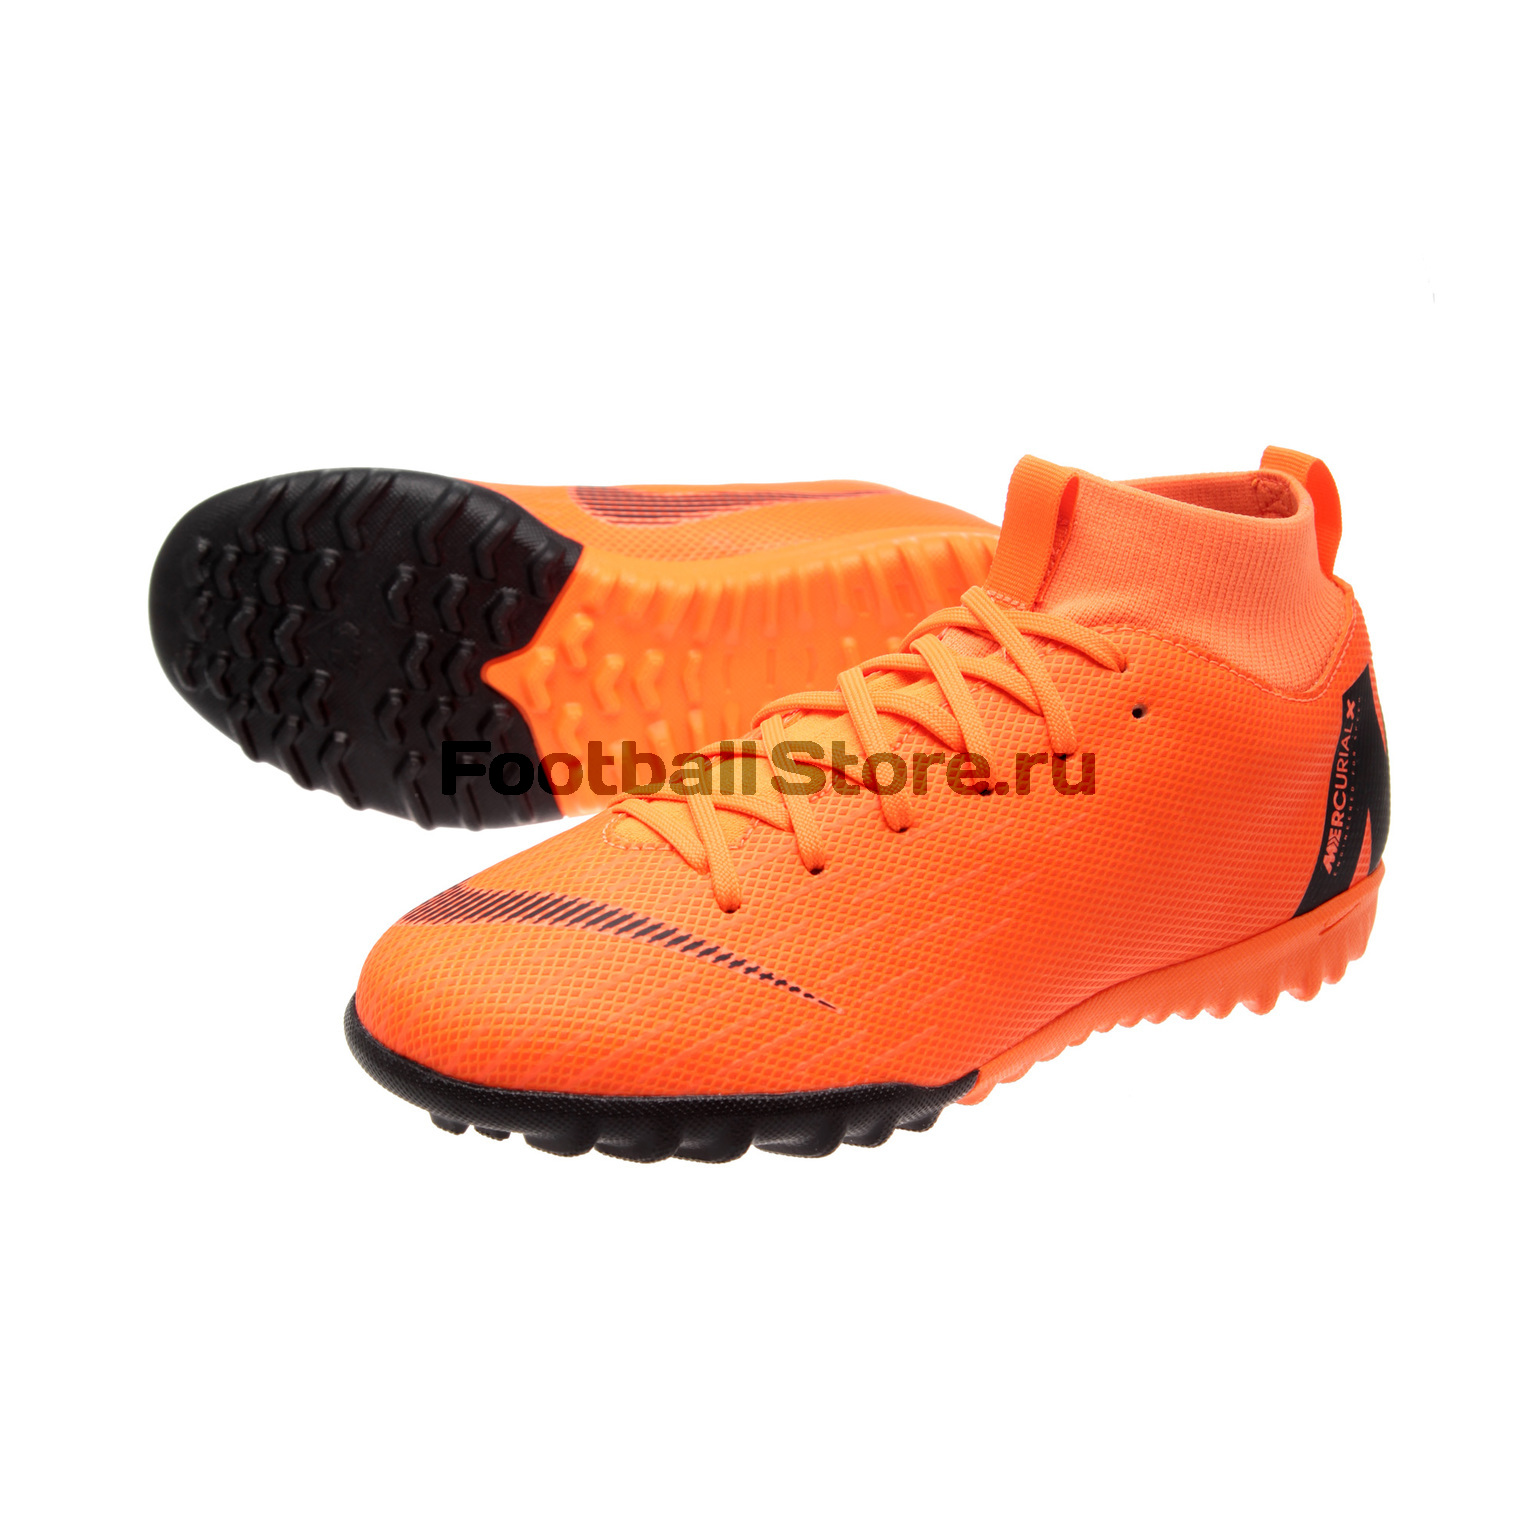 Шиповки Nike JR SuperFly X Academy GS TF AH7344-810 бутсы nike superfly academy gs cr7 jr fg mg aj3111 390